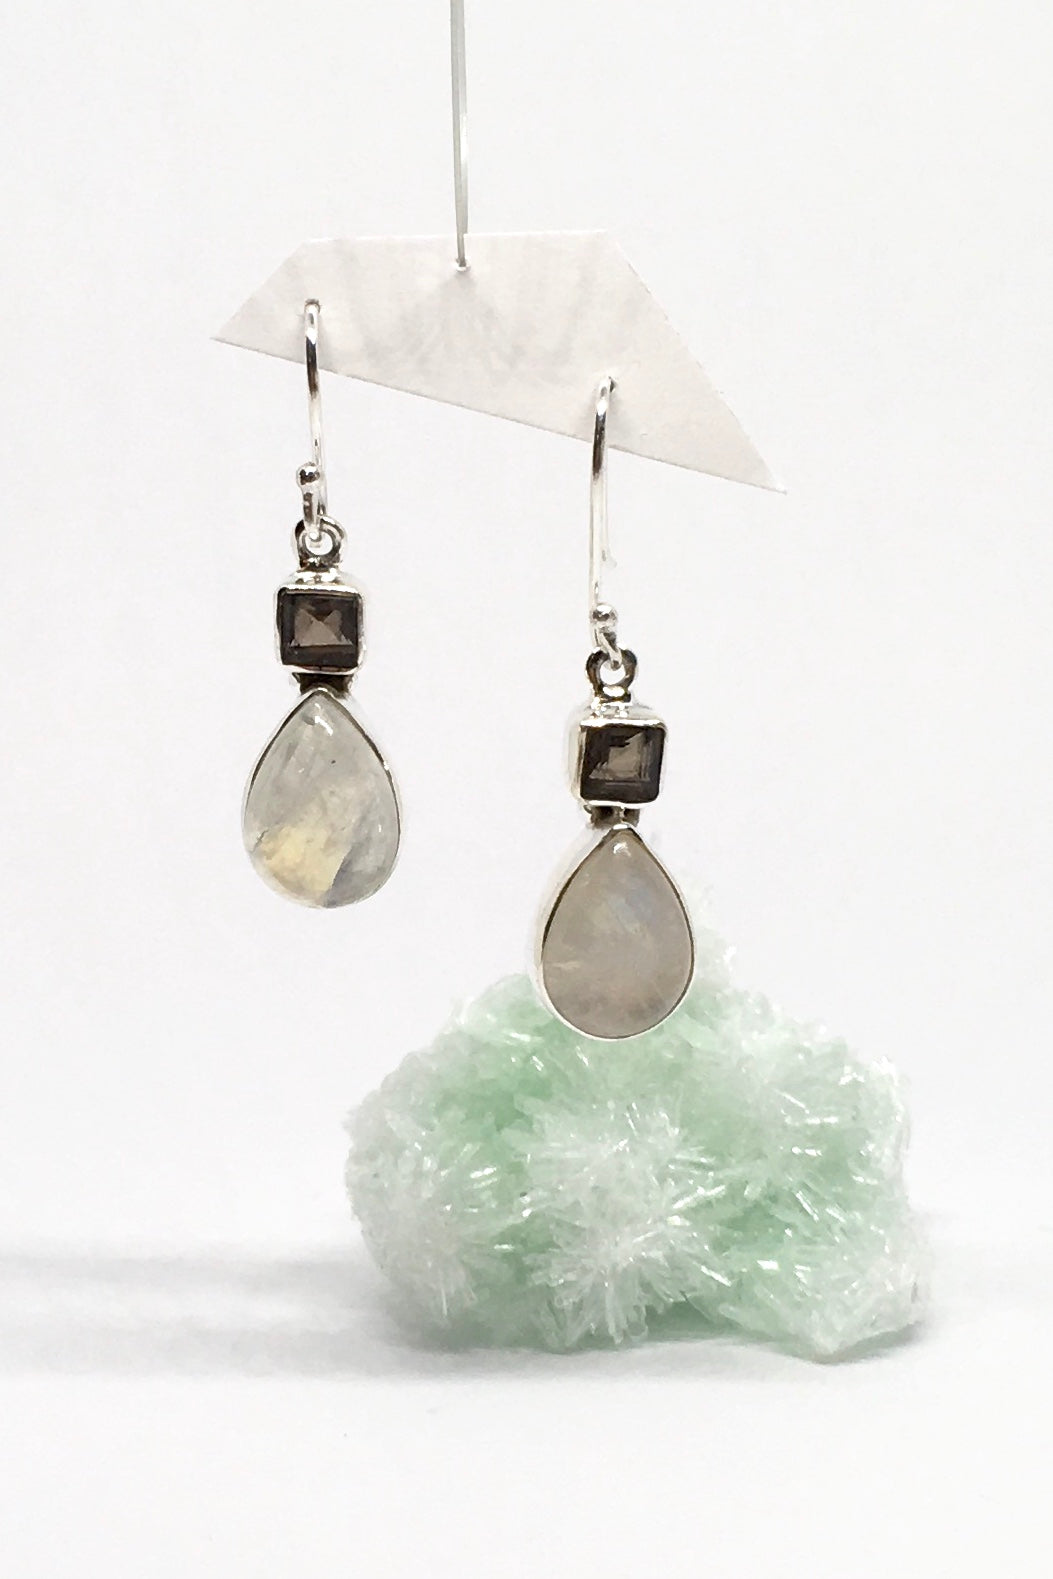 Our new earrings Moonstone Dance have a perfect  Smokey Quartz square cut at the top, and are set in 925 silver.